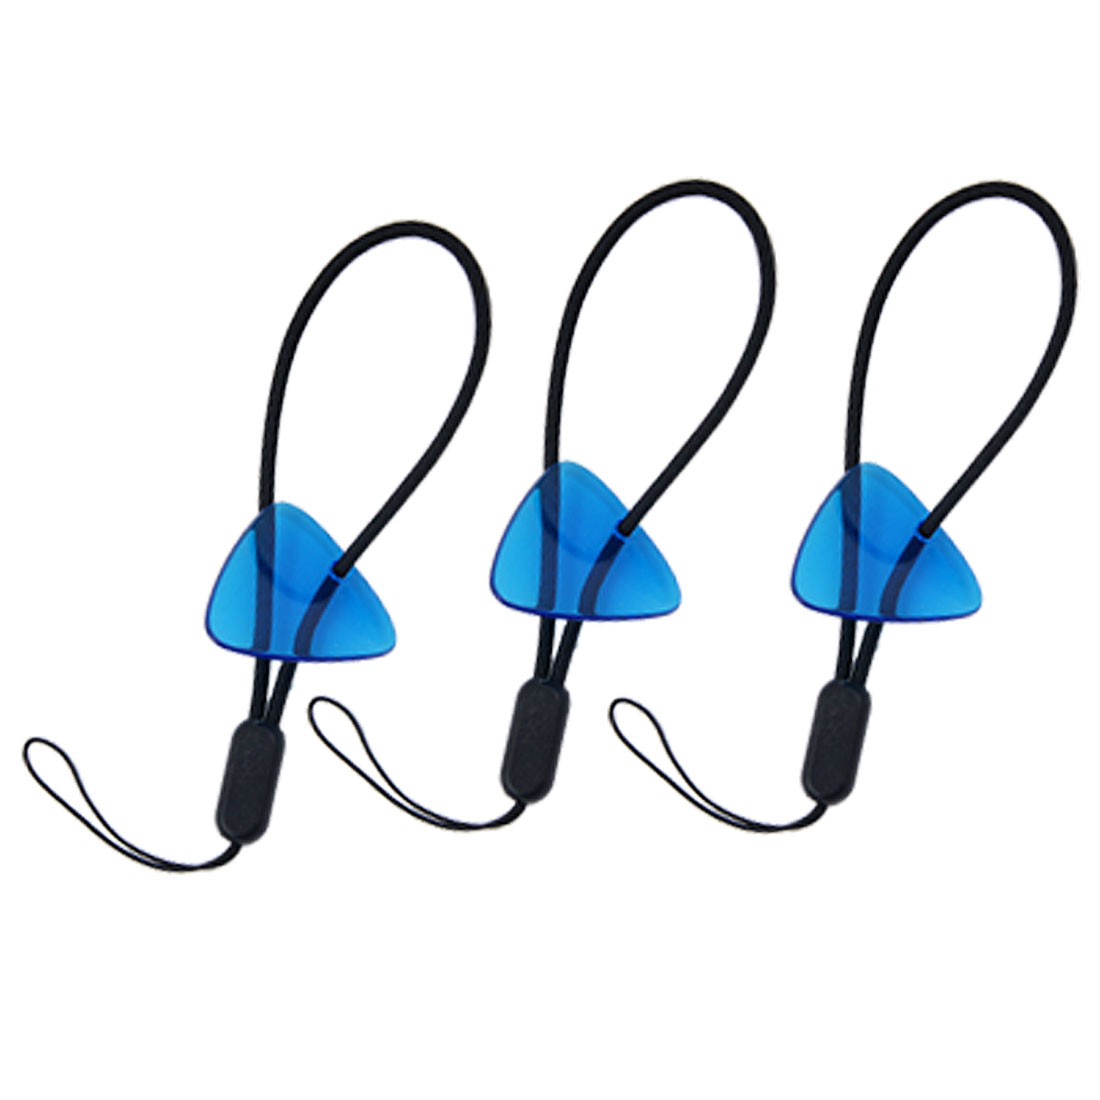 3 PCS Clear Blue Plastic Stylus Guitar Picks Strap Charm for Nokia Game